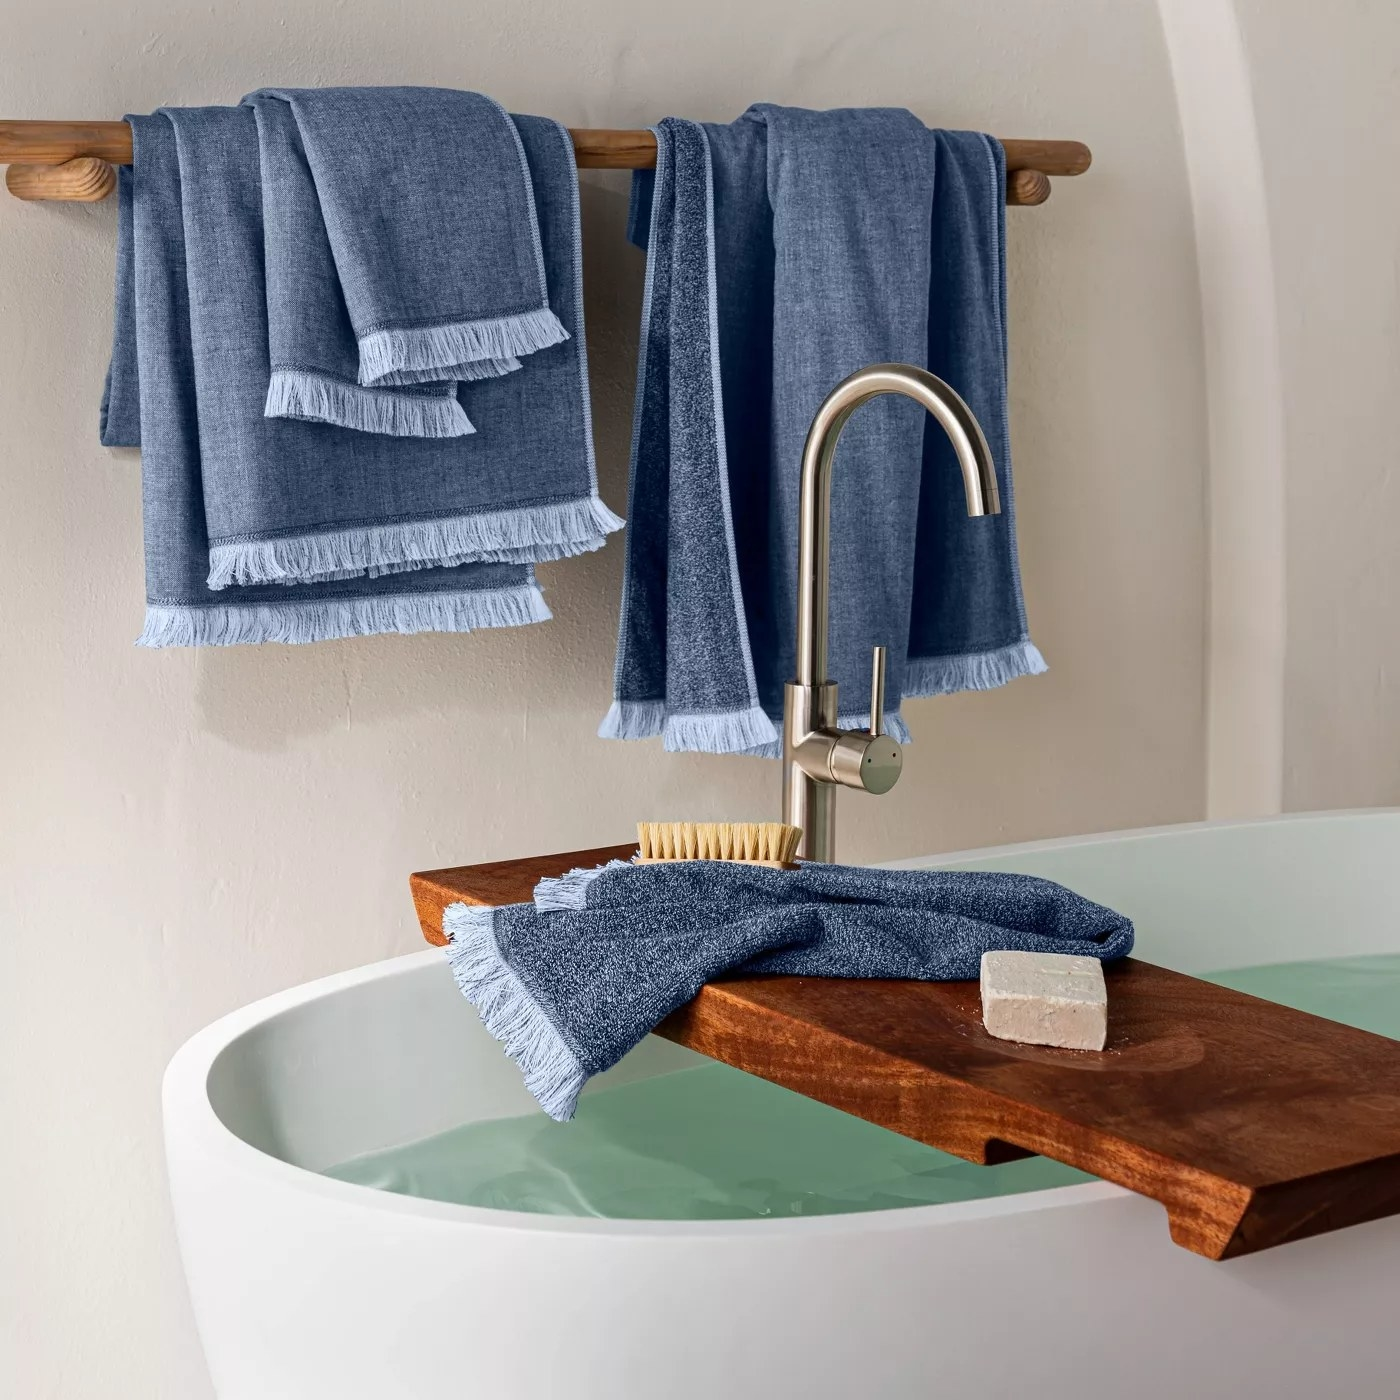 The towels in blue